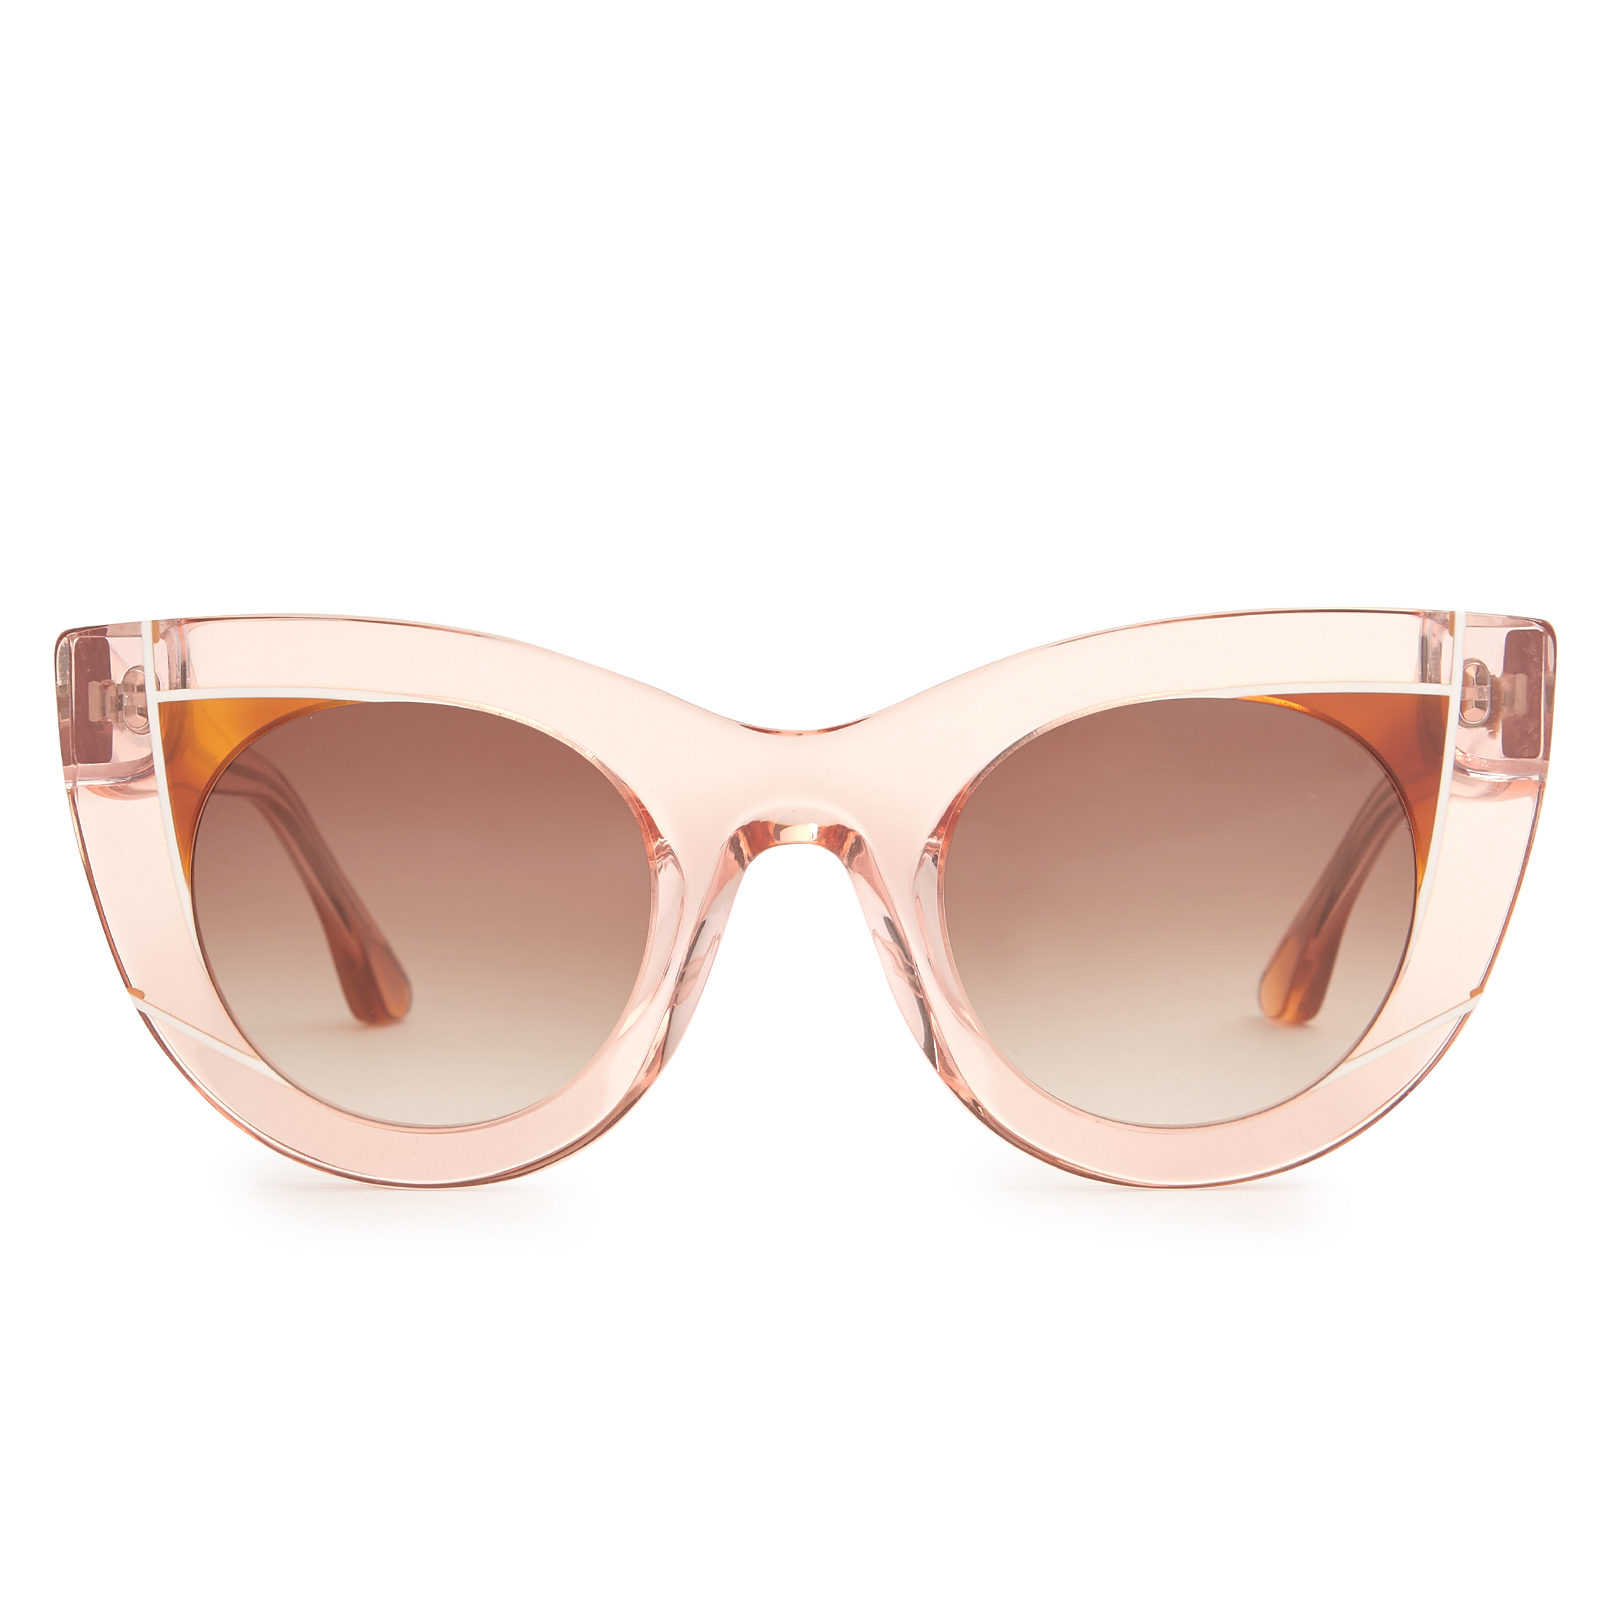 Shop Thierry Lasry Brand Sunglasses Eyewear Eyeglasses Buy Designer Sale